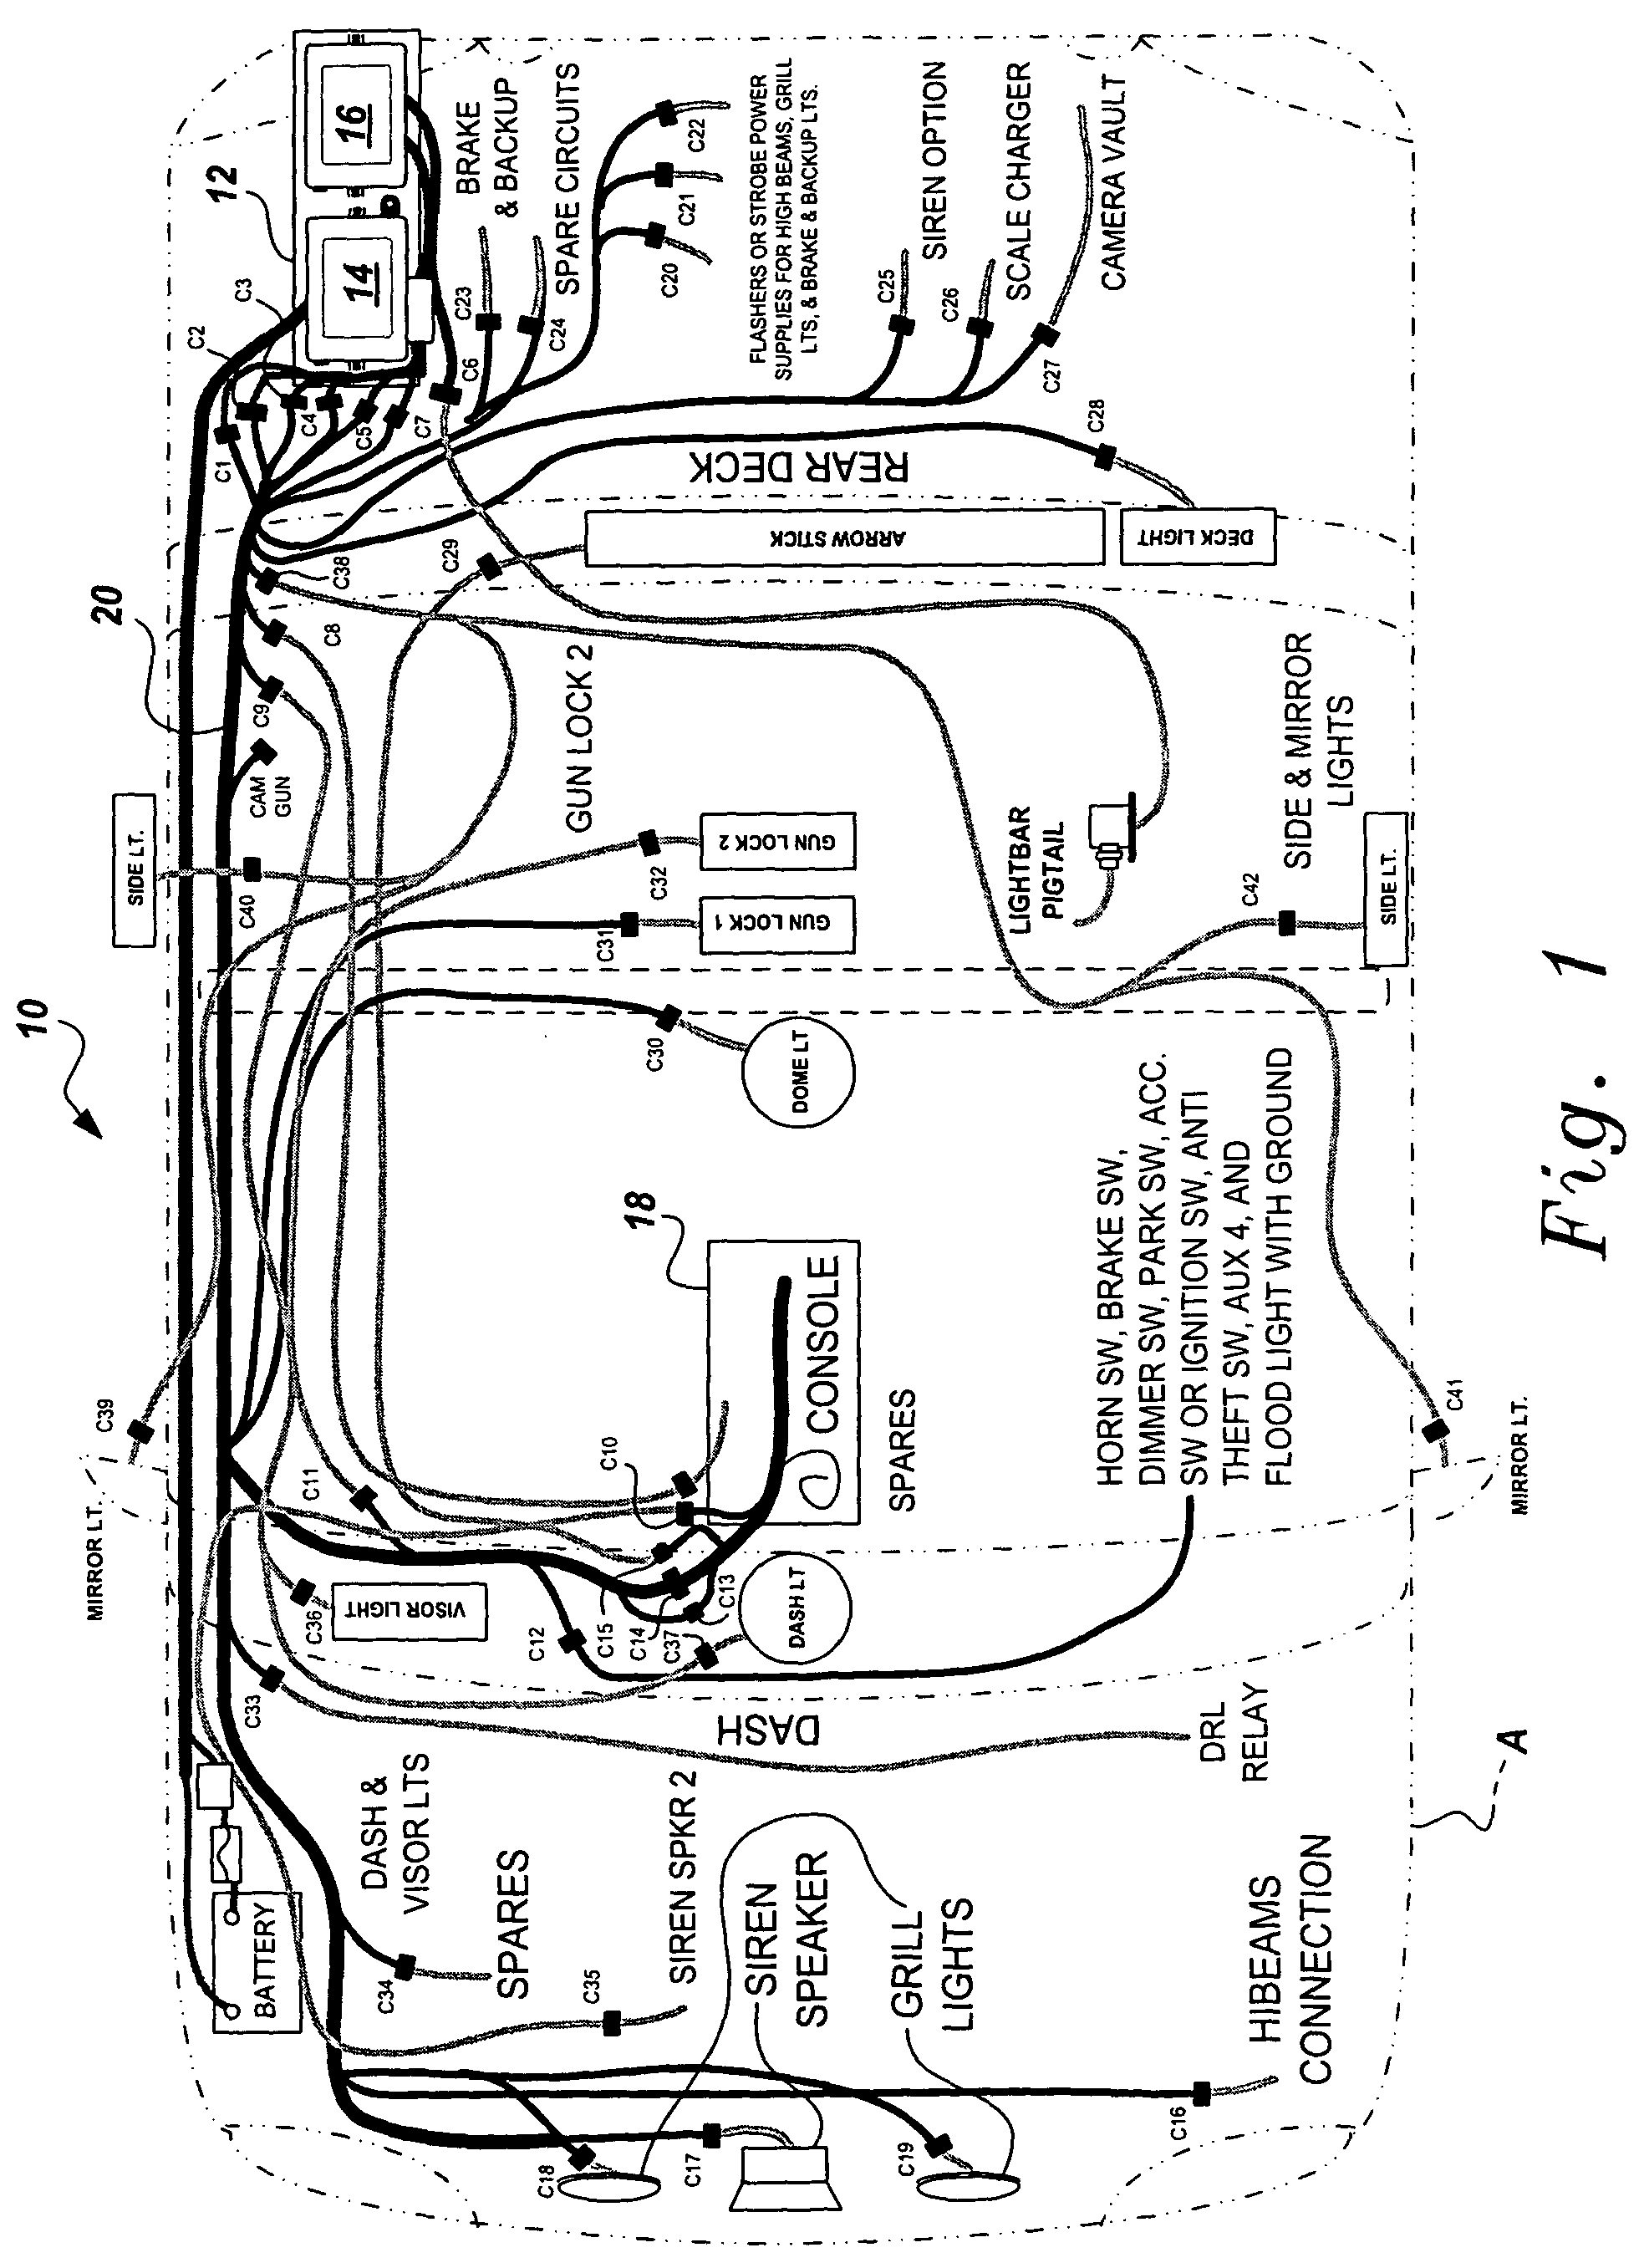 US07342325 20080311 D00001 patent us7342325 universal fleet electrical system google patents cat c15 wiring diagram at gsmx.co